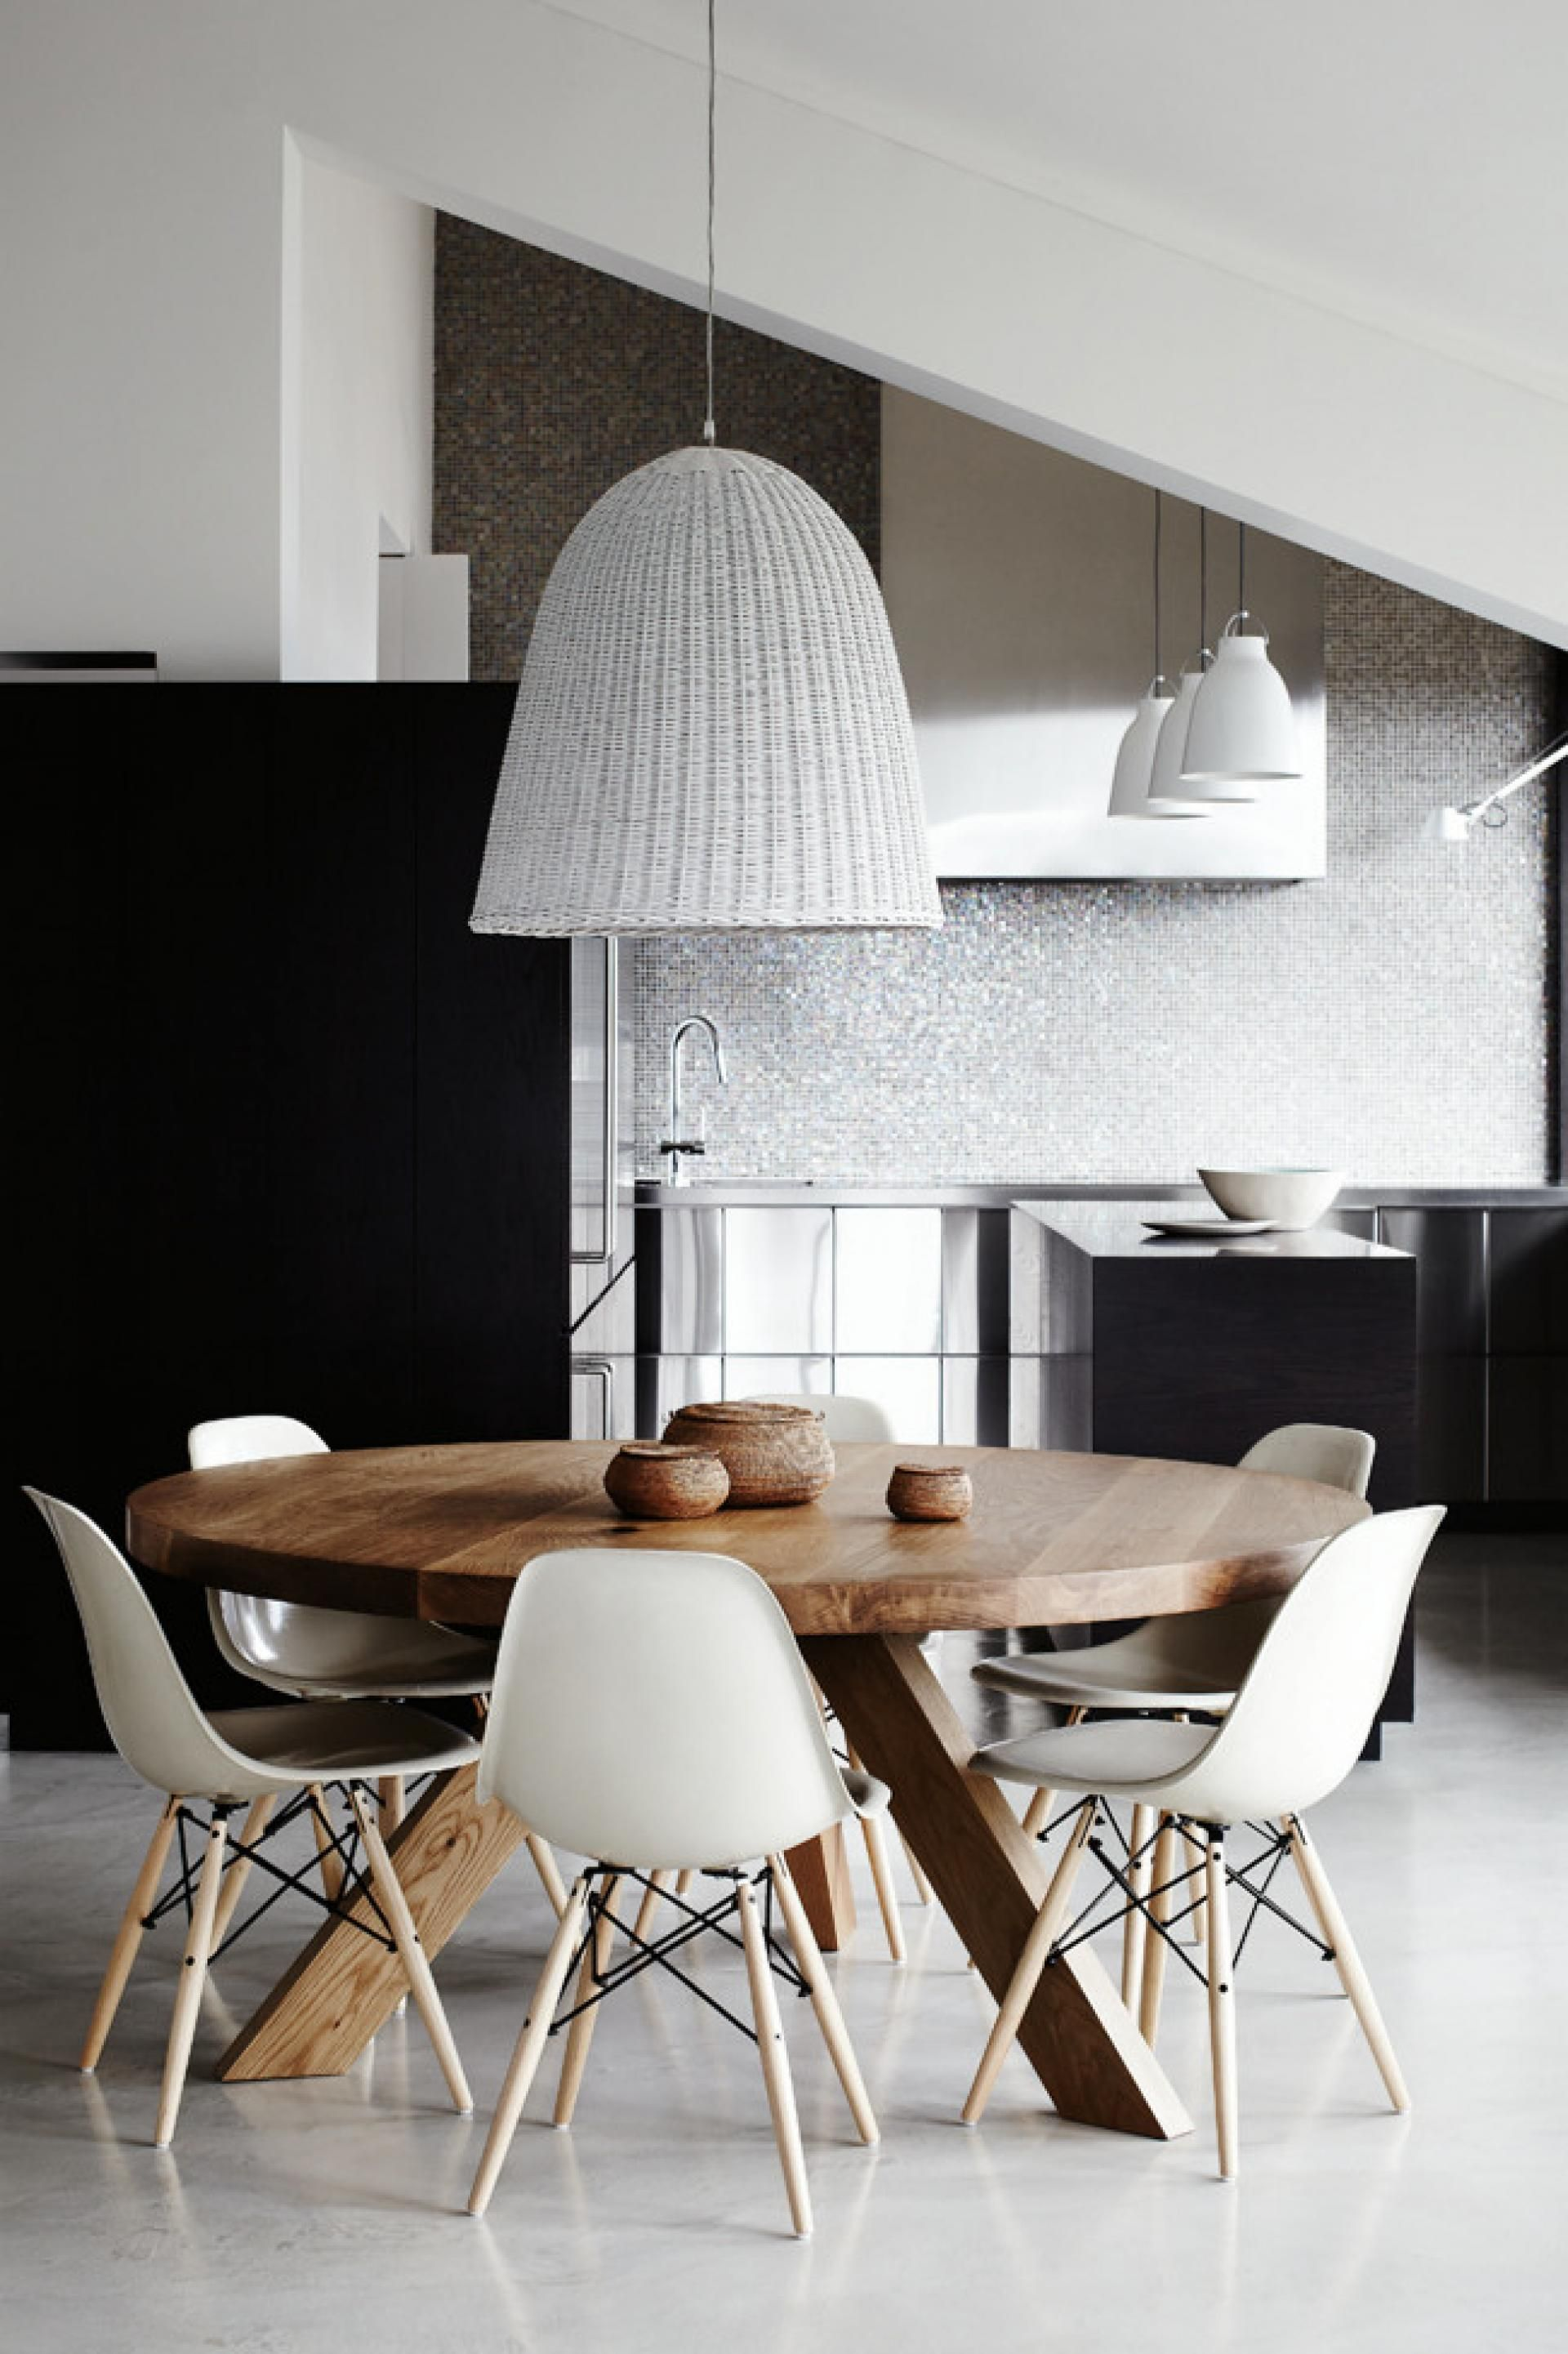 DSW dining chairs by Charles and Ray Eames Tripod table by Mark Tuckey and Bell 95 light by Gervasoni Home Pinterest